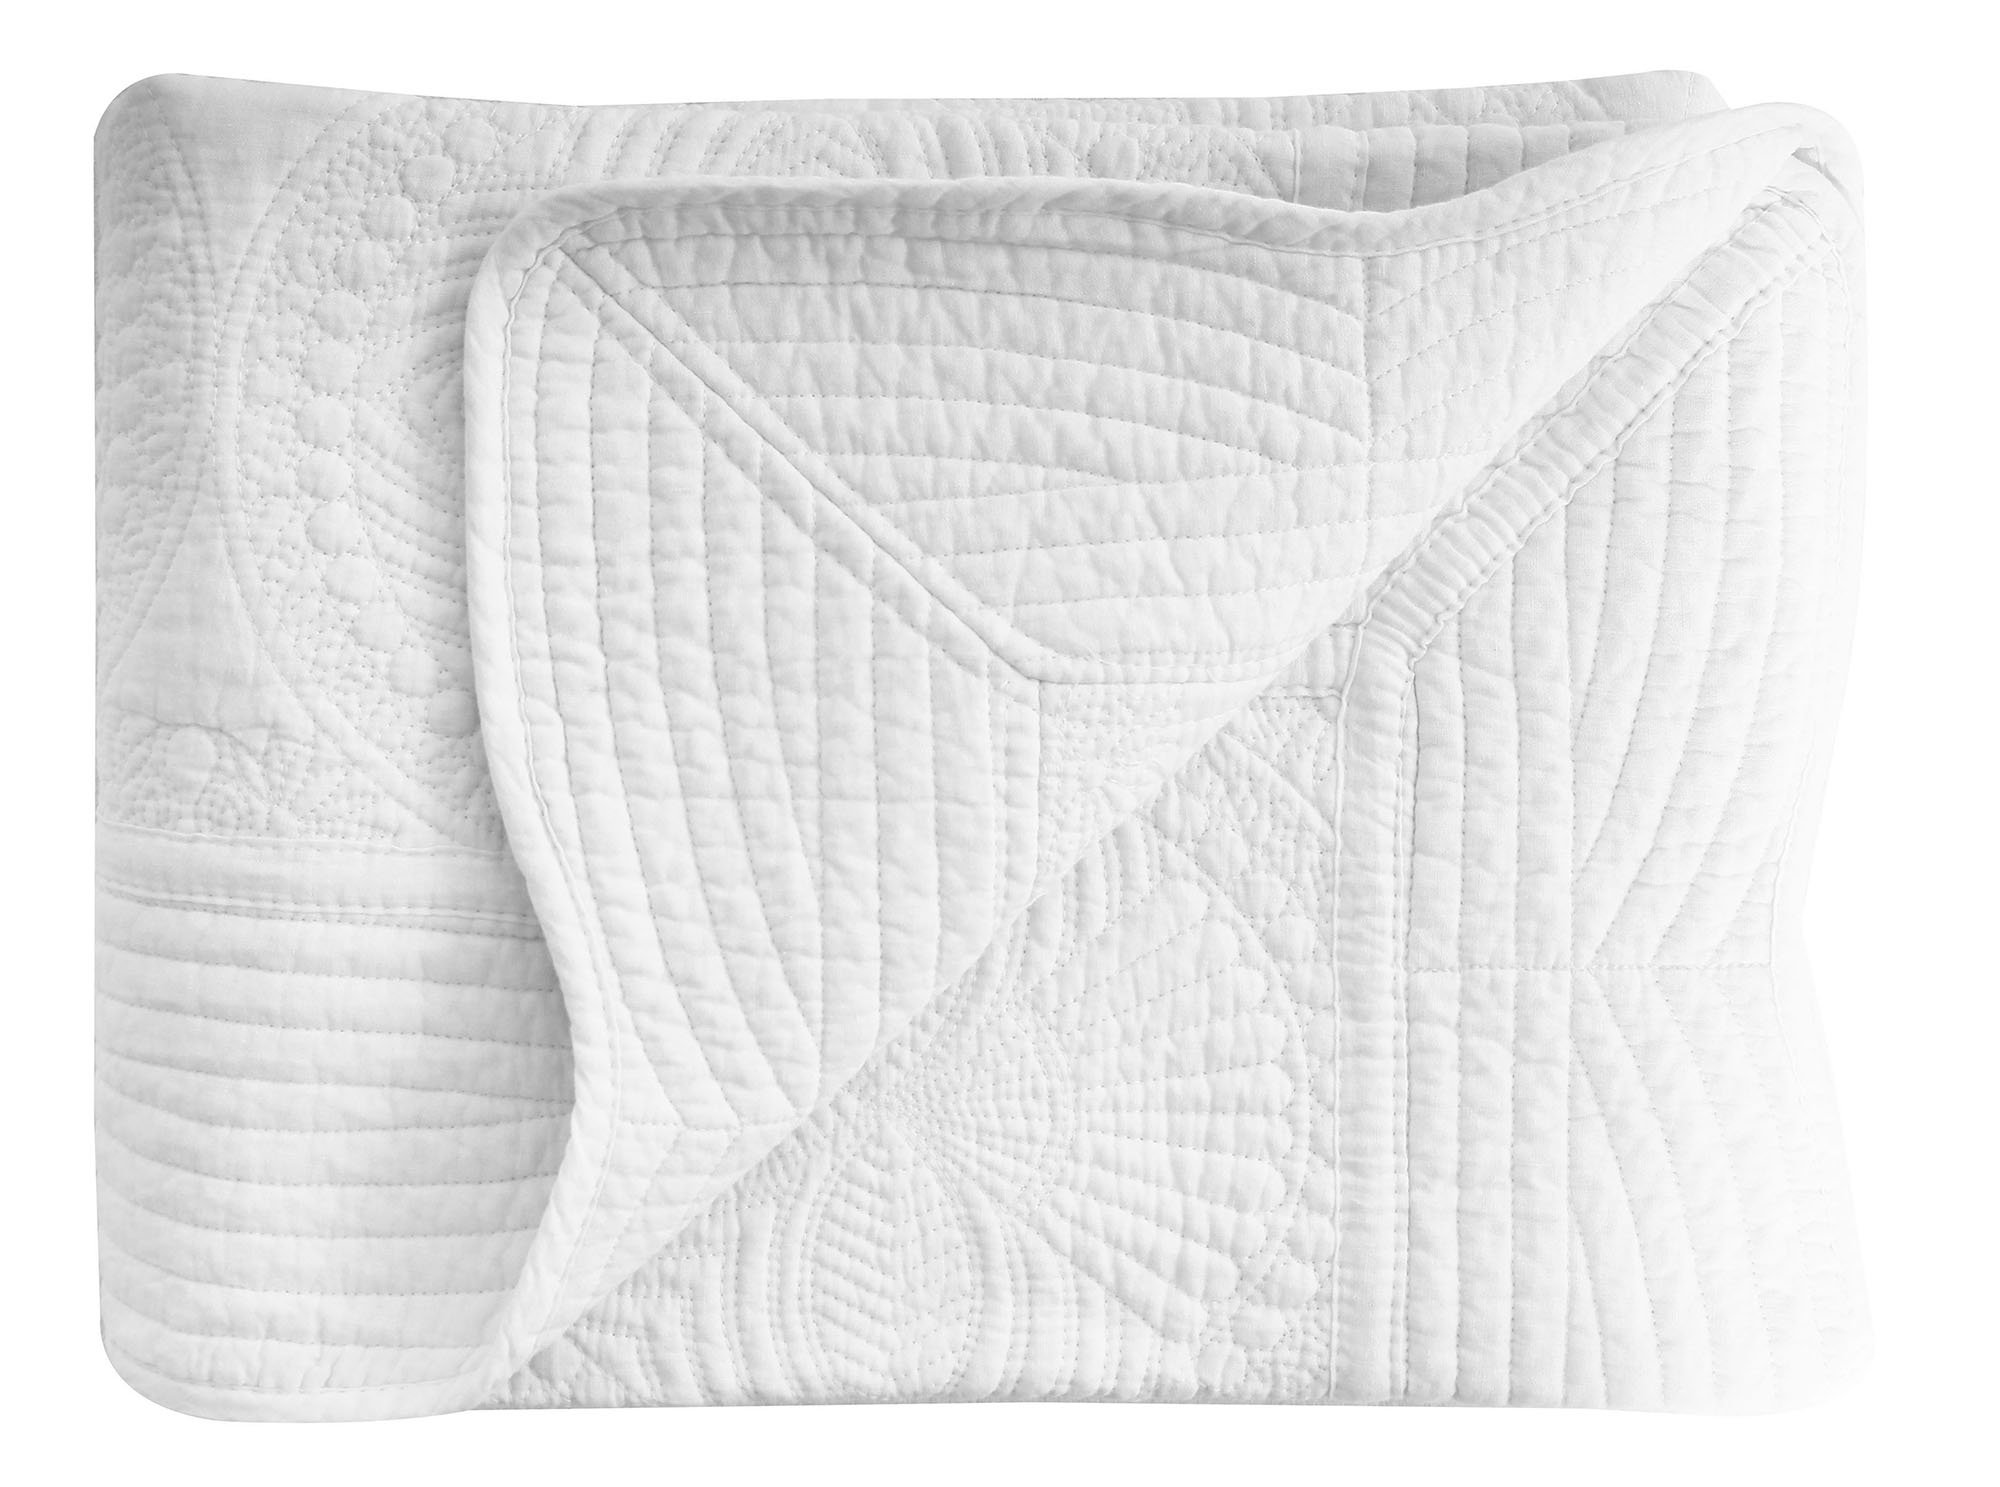 AshopZ Lightweight All Weather Embossed Quilt for Babies and Infant, White, 36 inches x48 inches by AshopZ